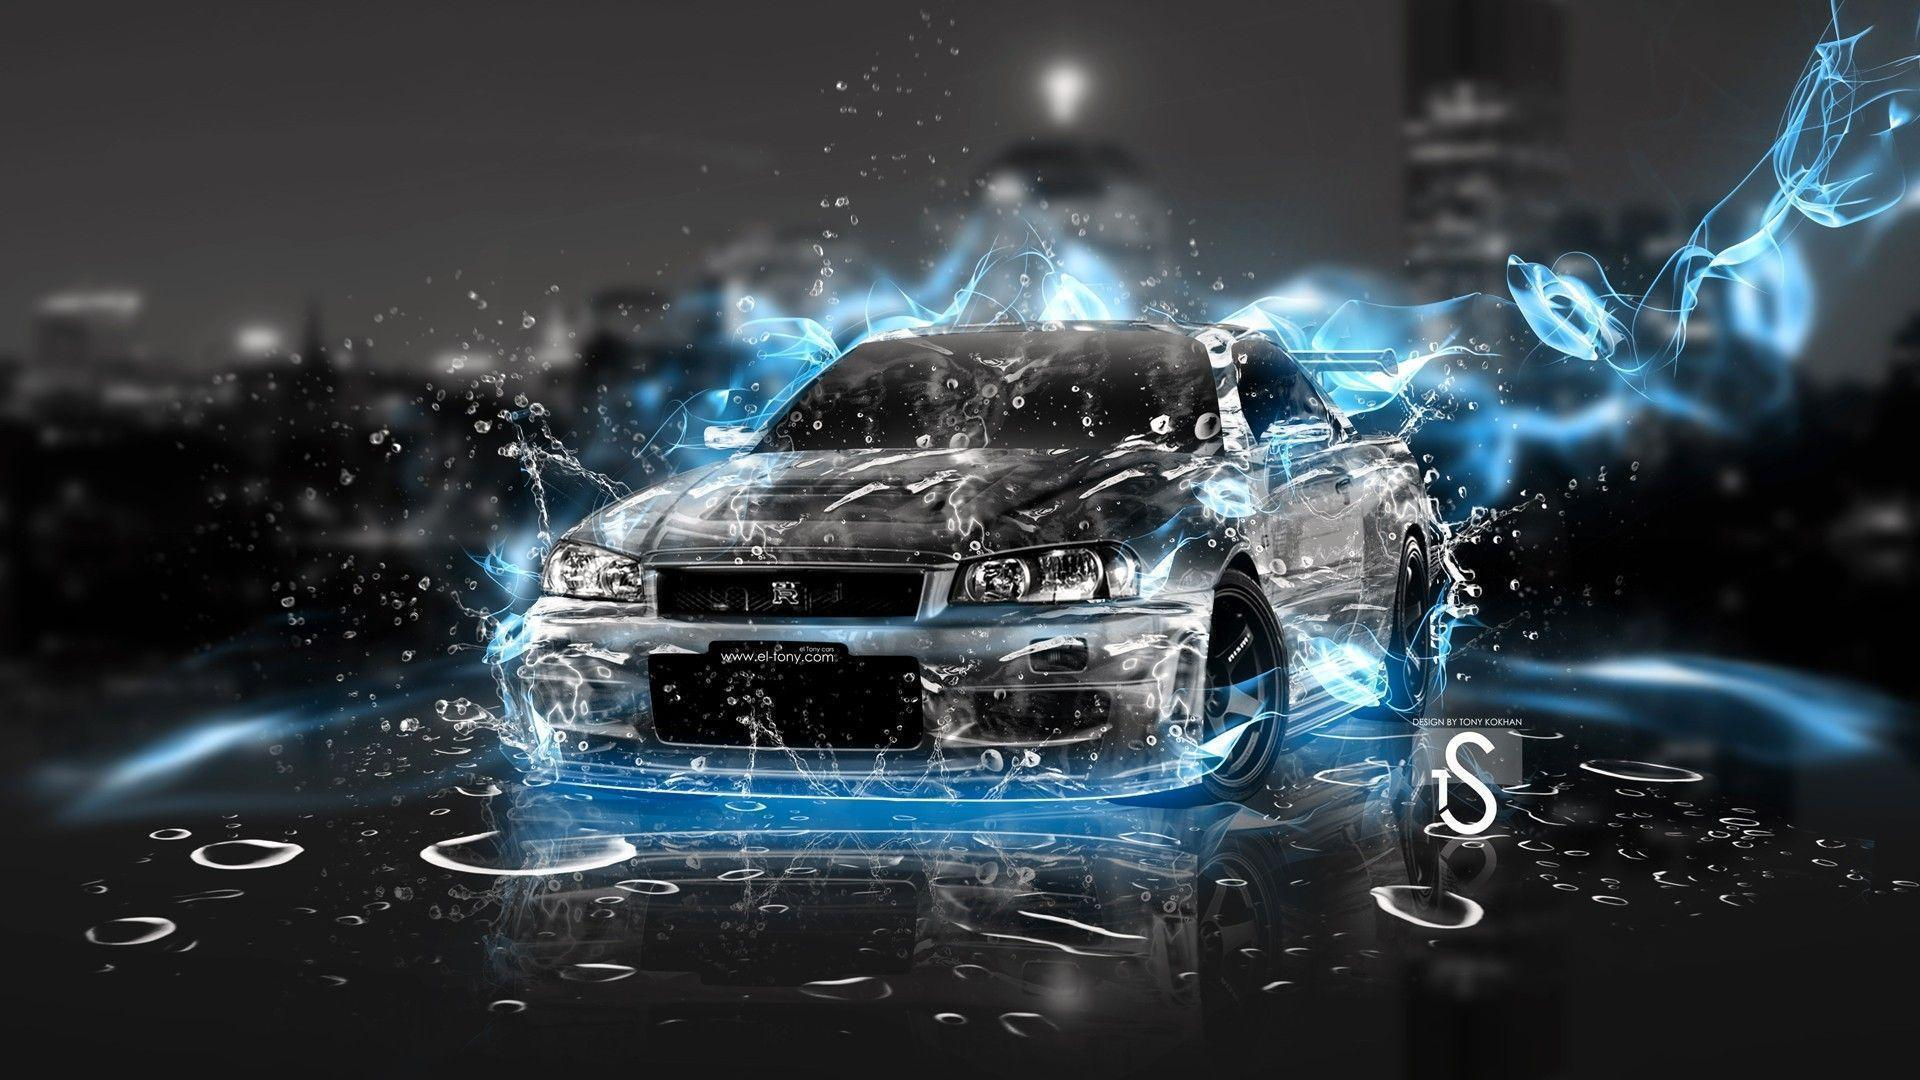 Cool Wallpapers Of Cars - Wallpaper Cave